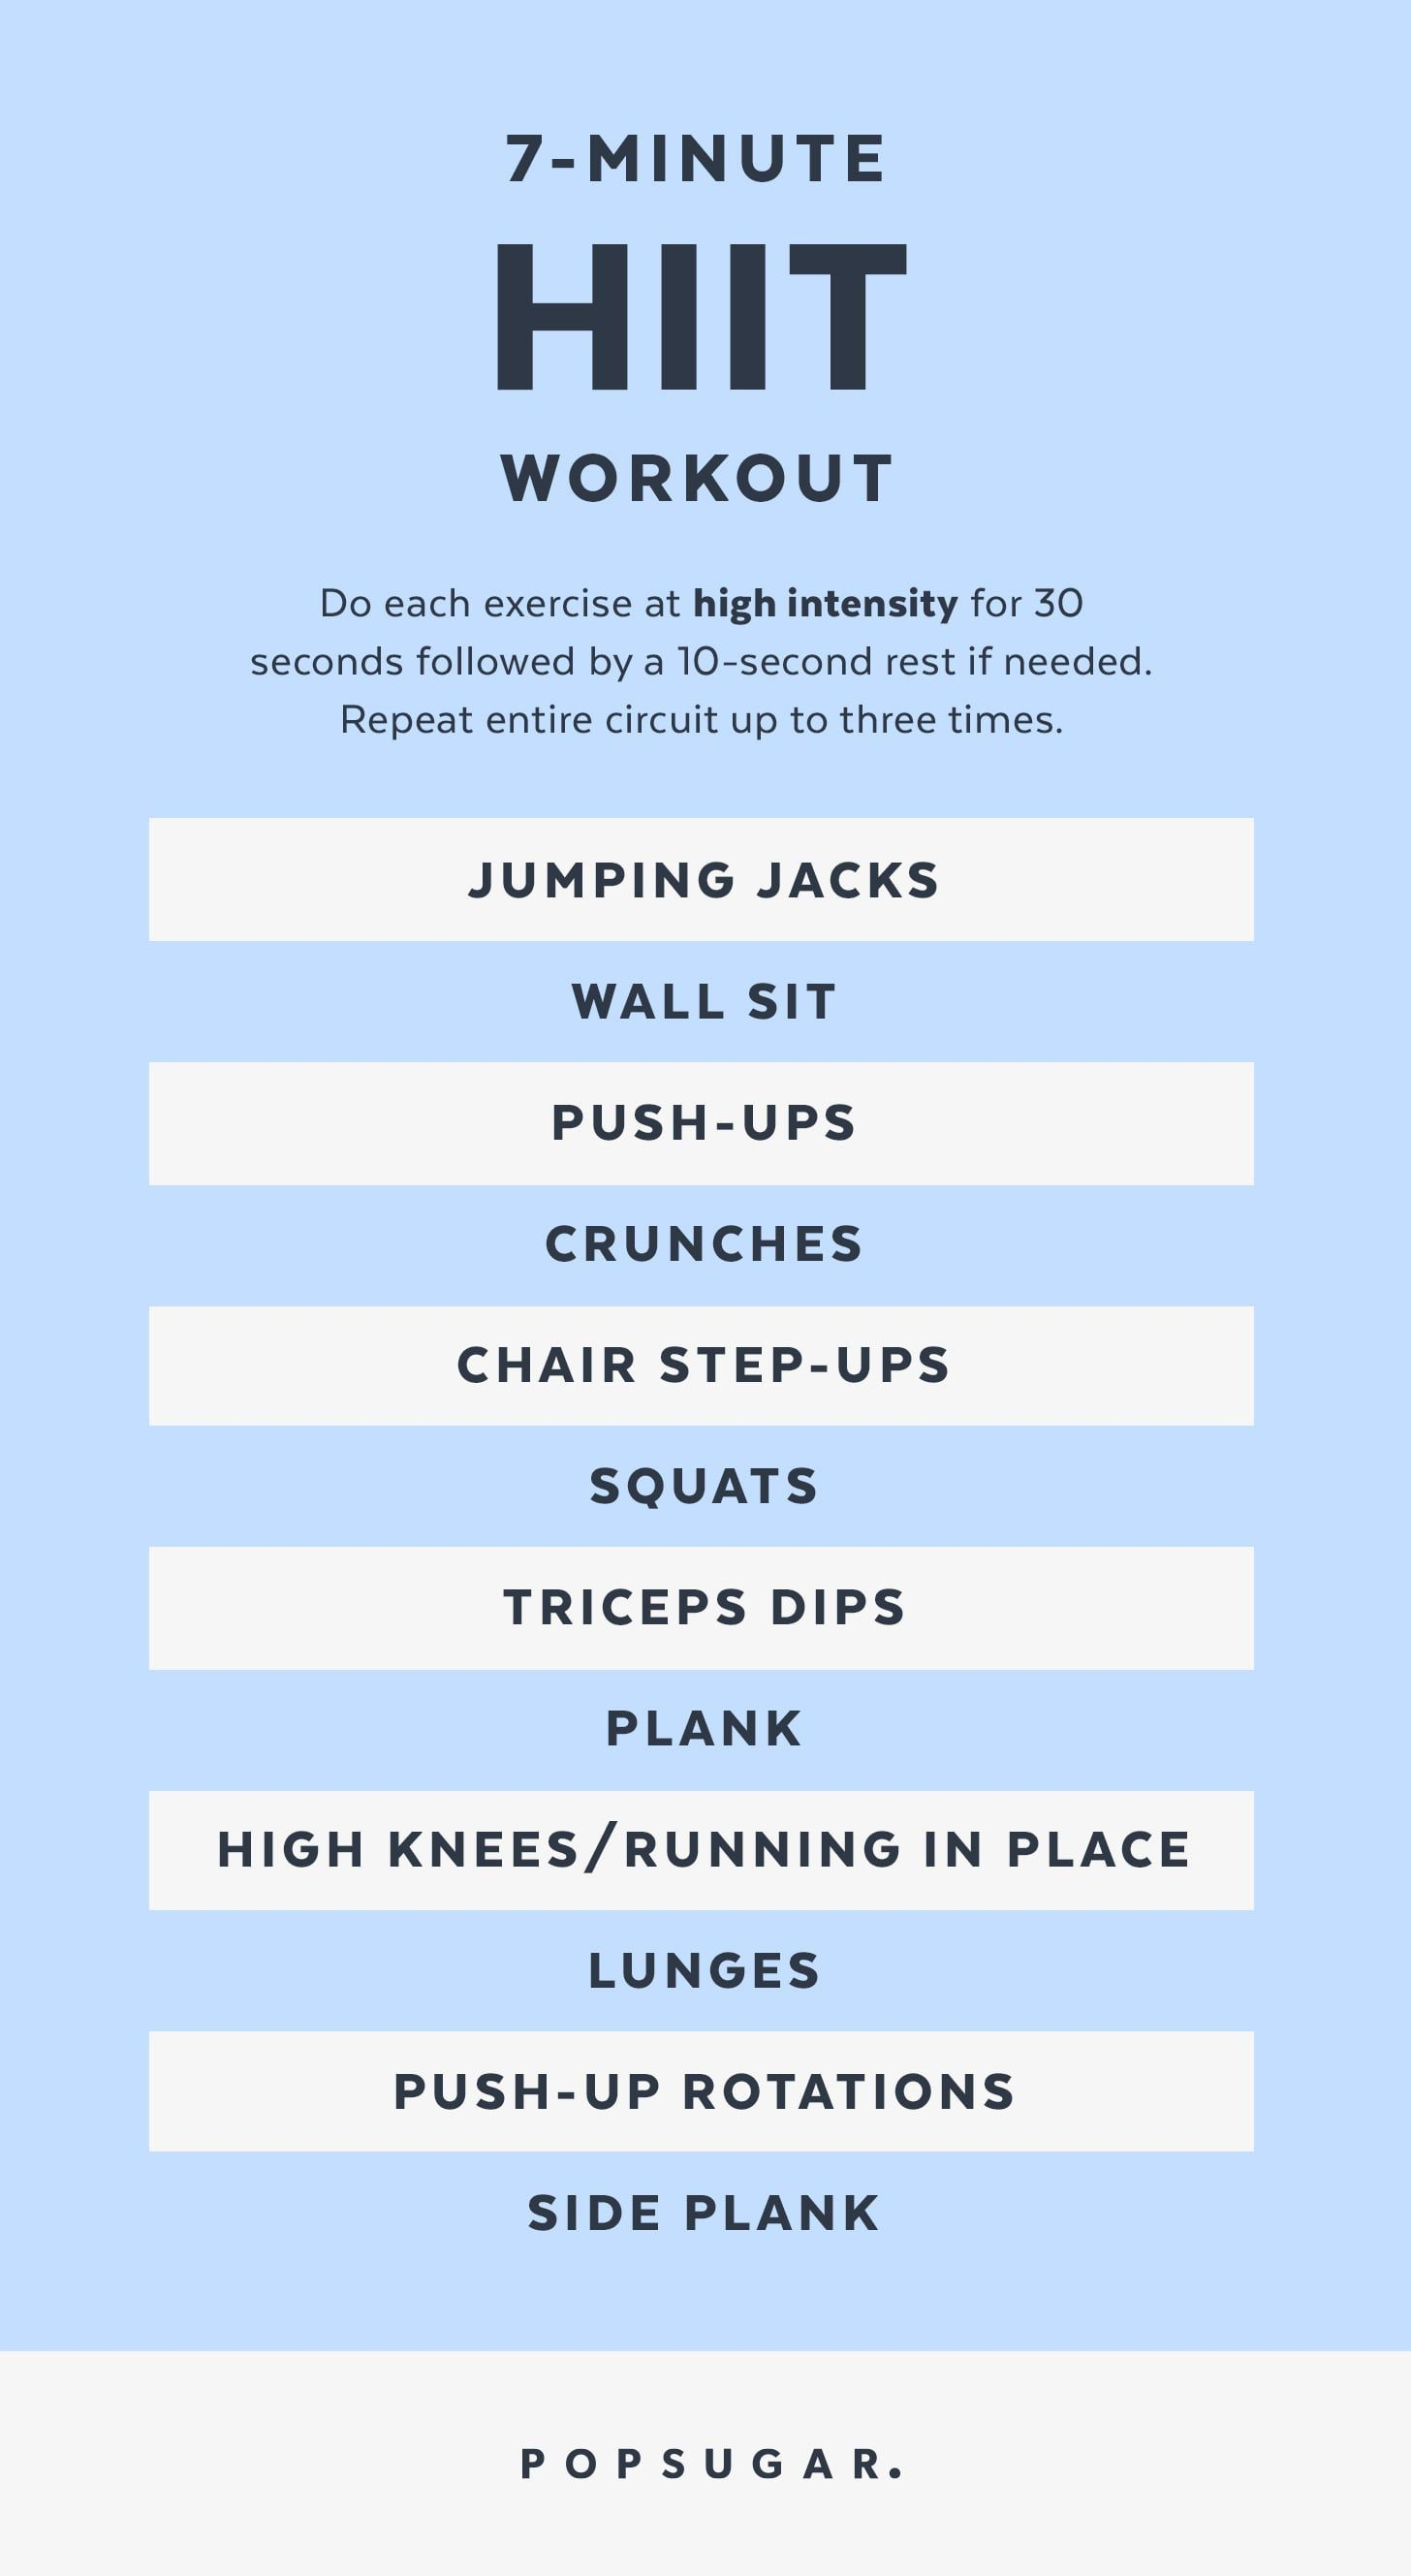 Burn Major Calories With This 7Minute HIIT Workout  Burn Major Calories With This 7Minute HIIT Workout